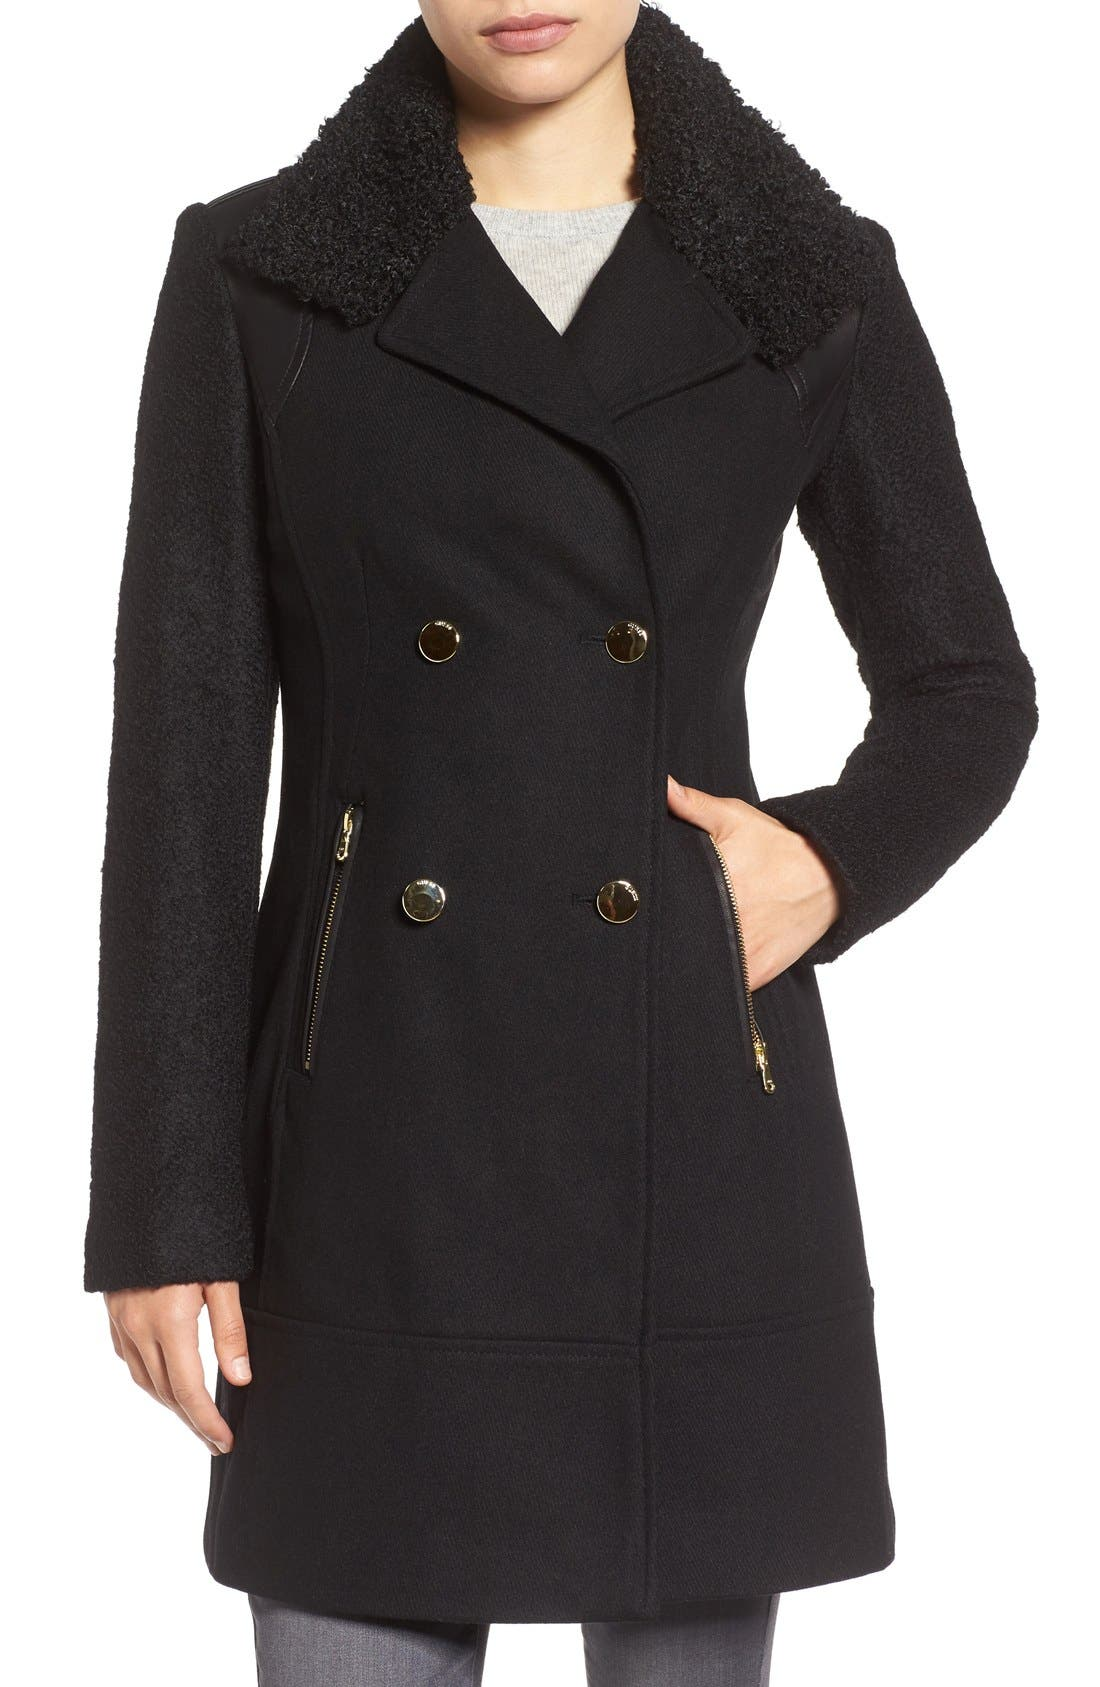 Alternate Image 1 Selected - GUESS Bouclé Sleeve Wool Blend Military Coat